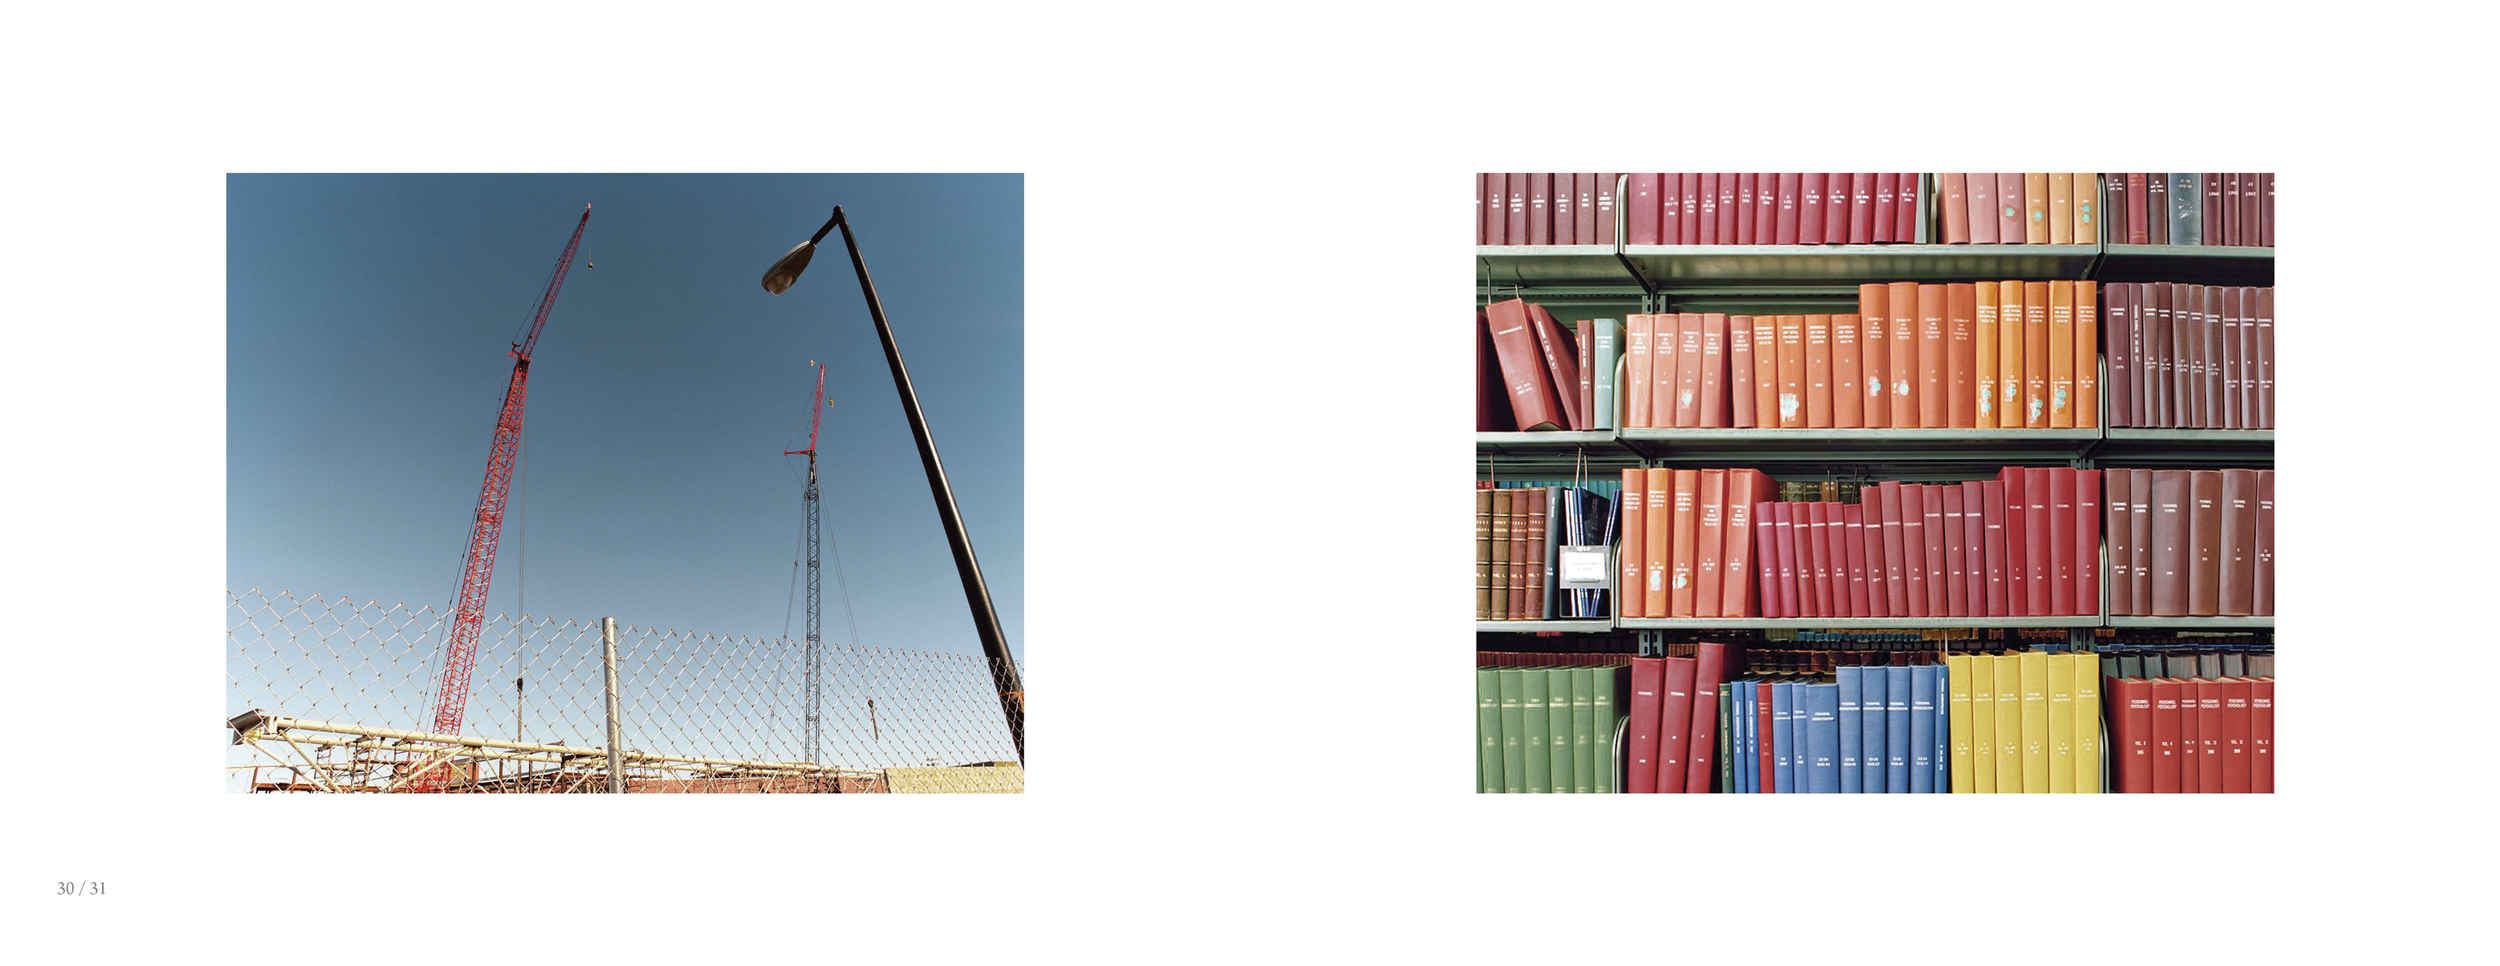 Vertical build/ Reference stacks , diptych | Recollection, 2011